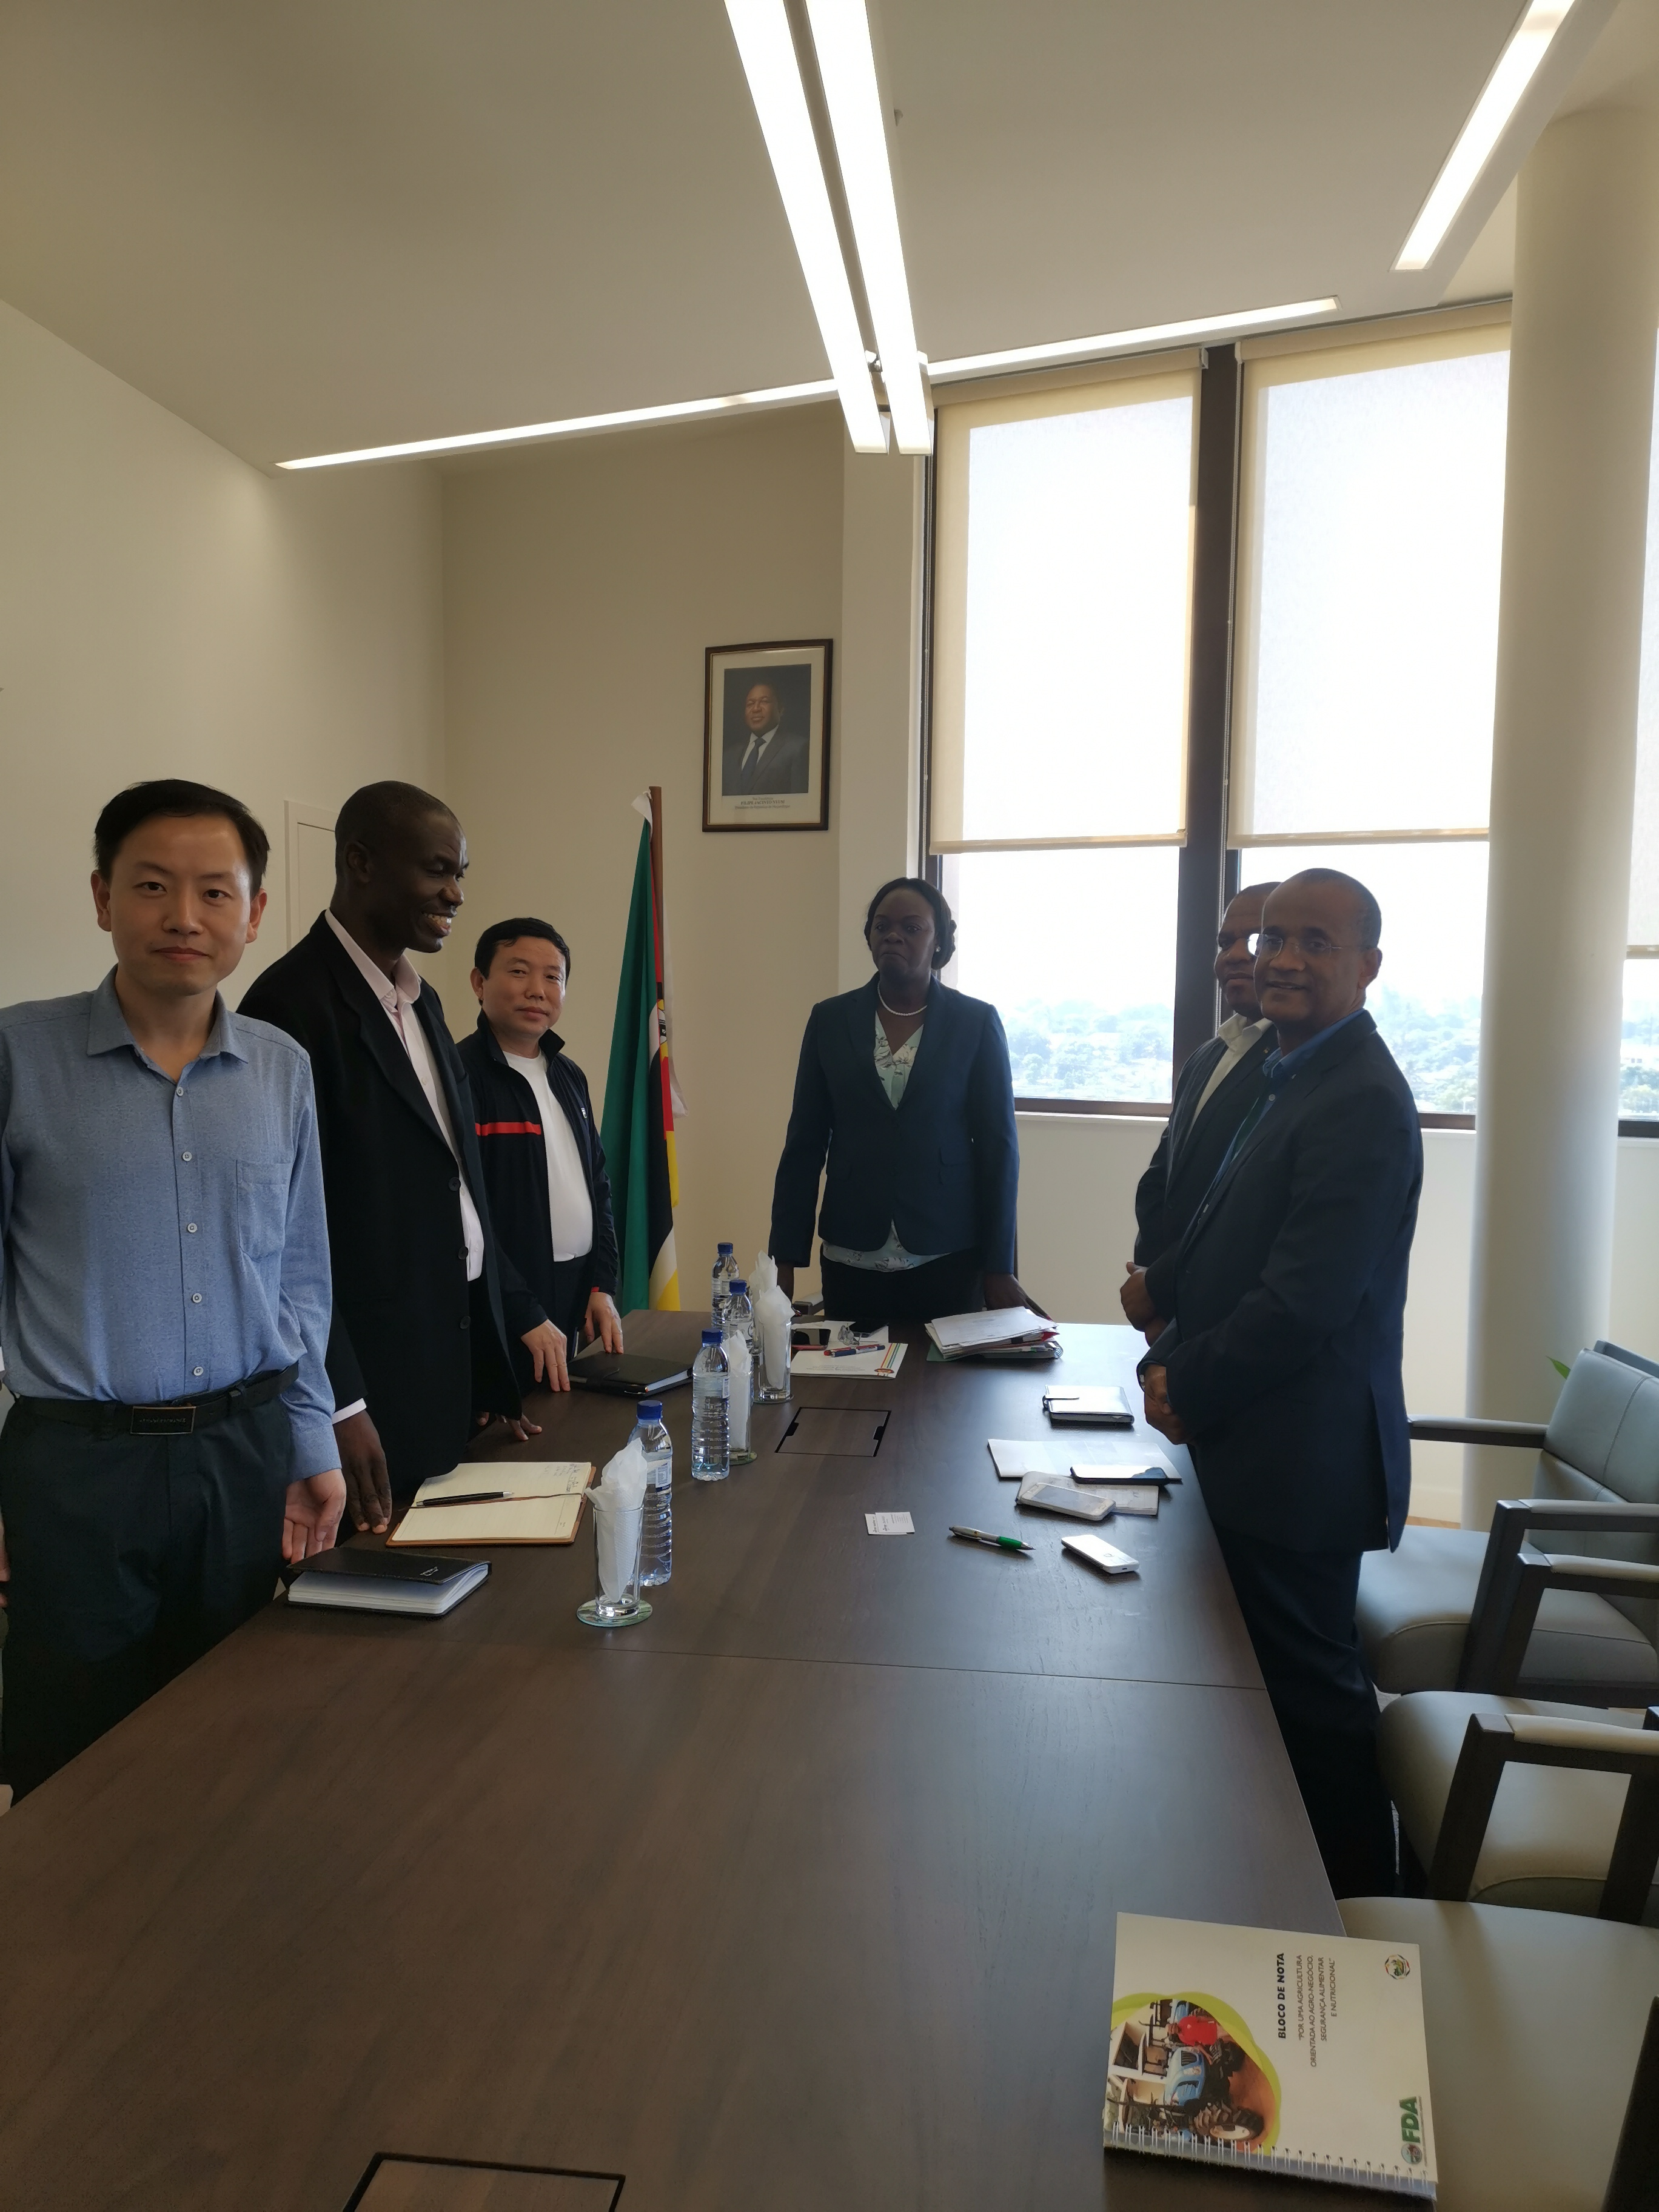 Our CEO meeting Mozambique with minister of agriculture and minister of education .